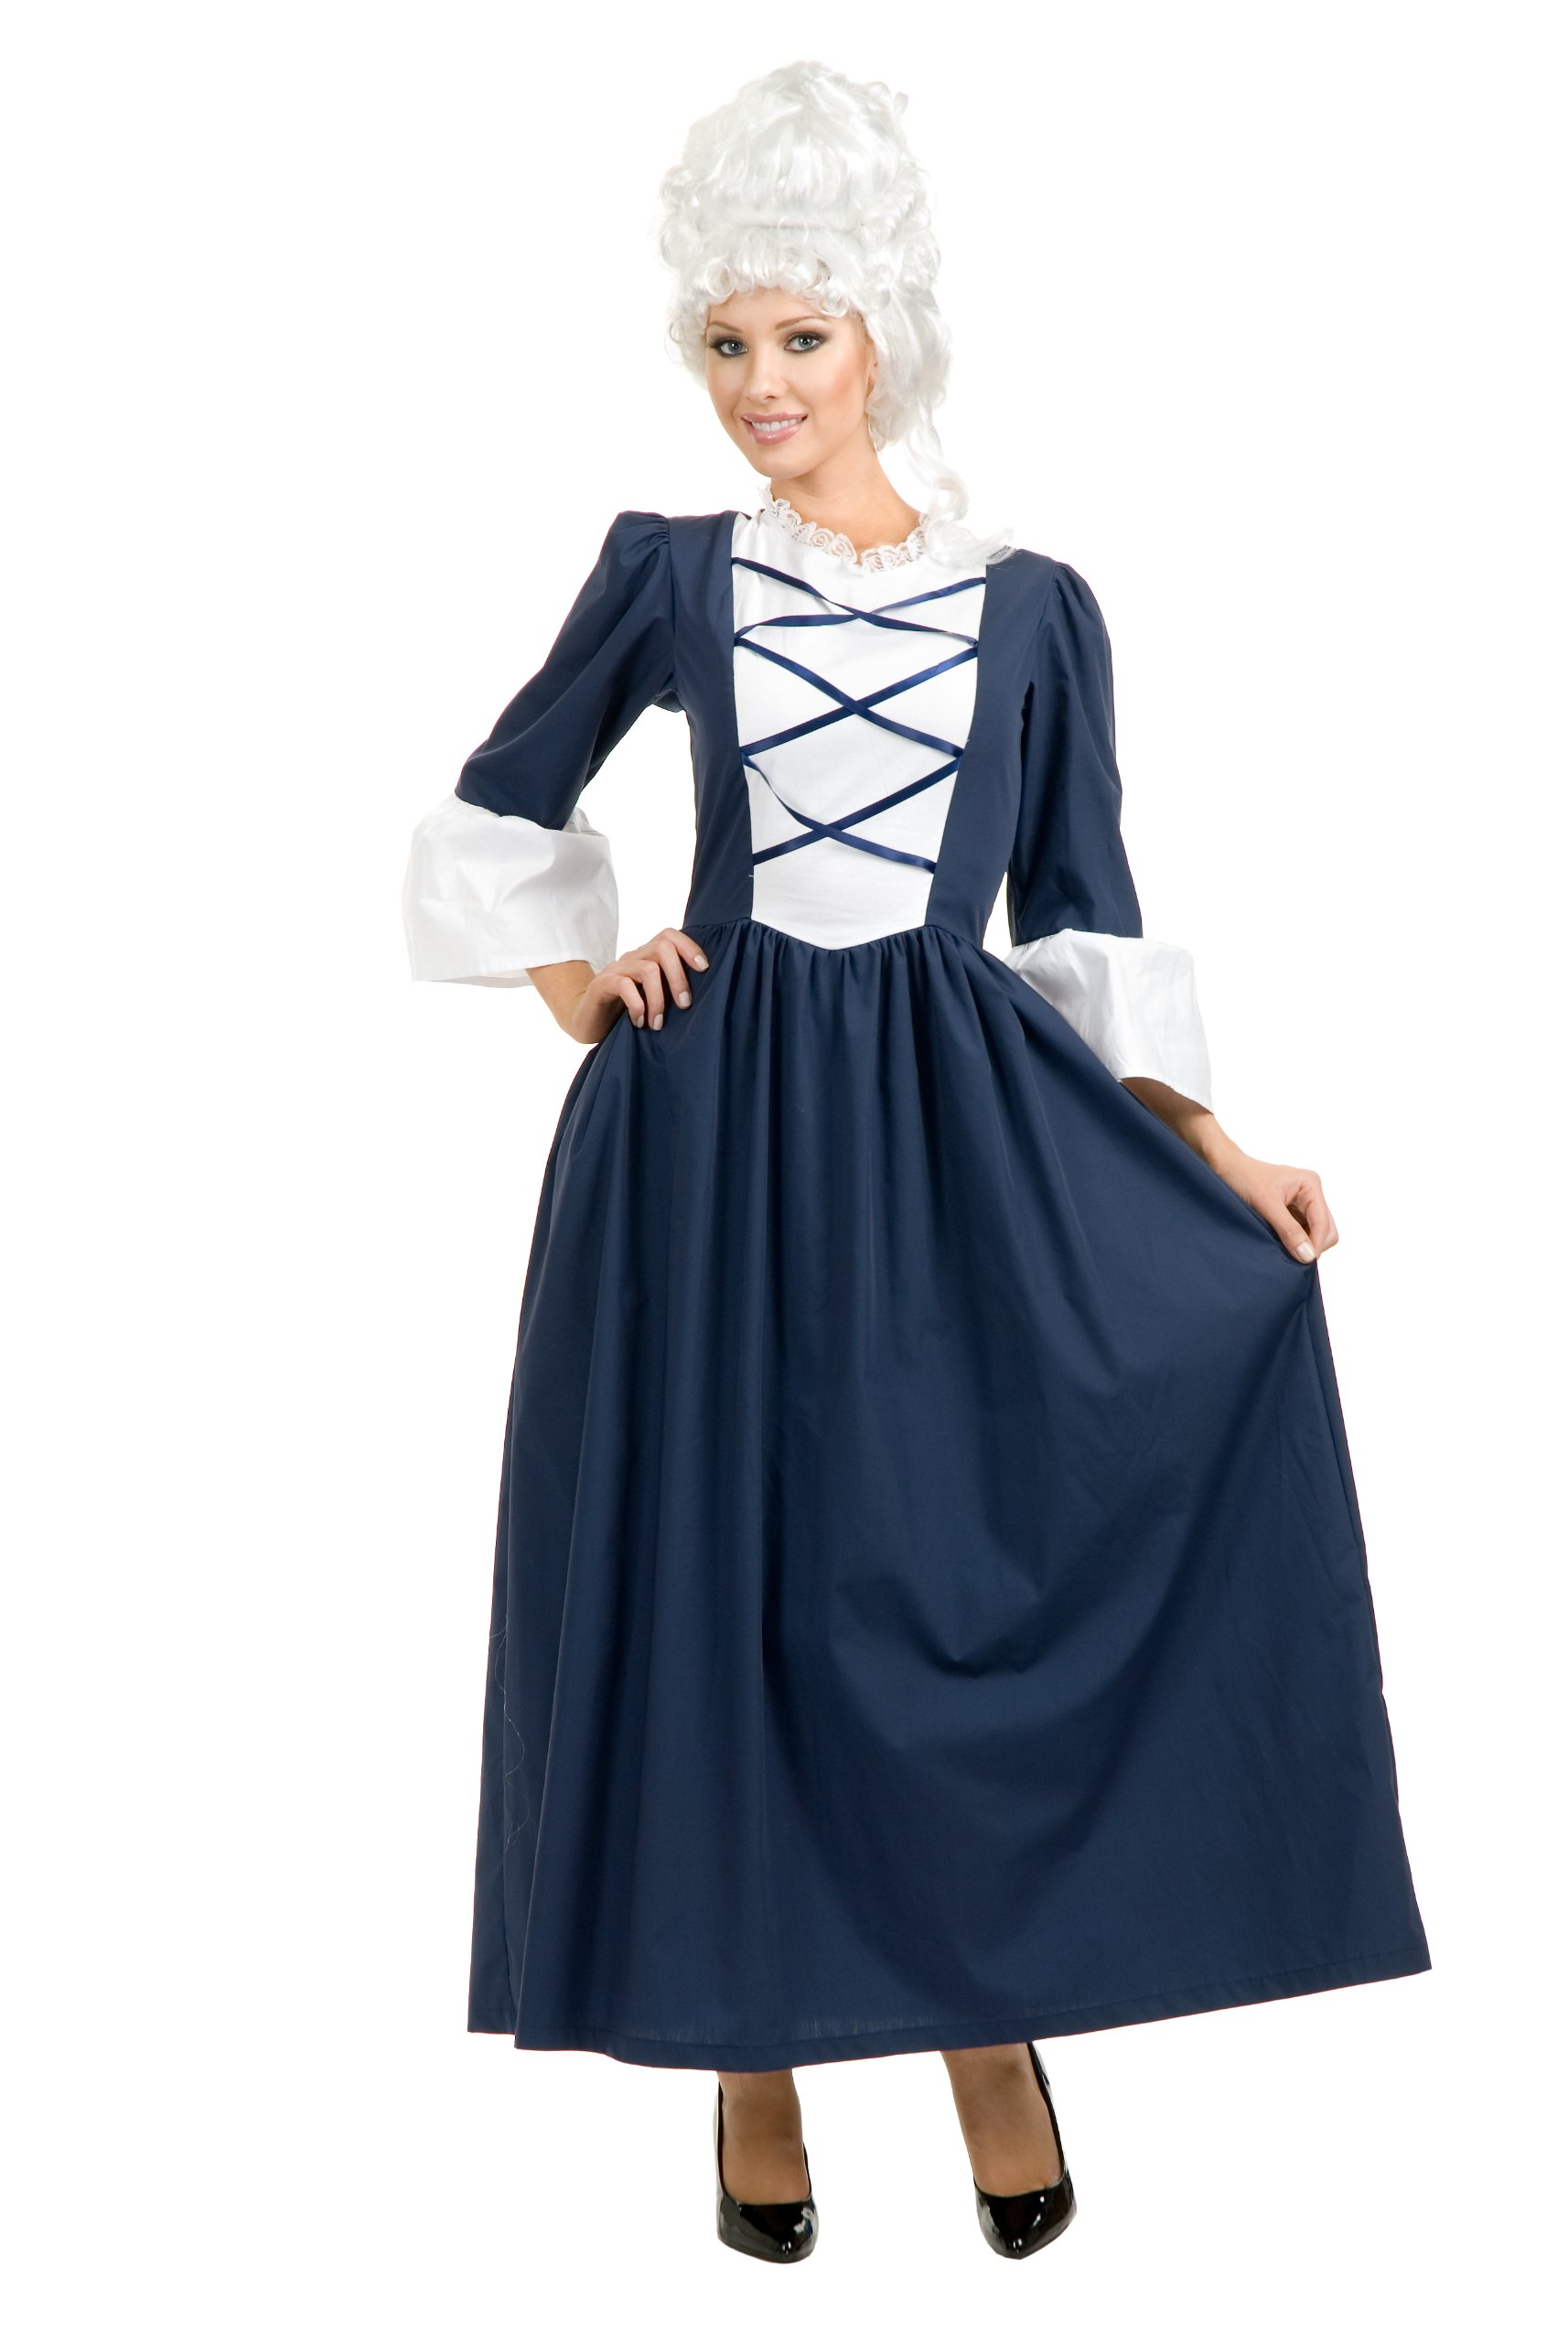 Charades Women's Colonial Lady Full Length Dress, Navy/White, Medium by Charades